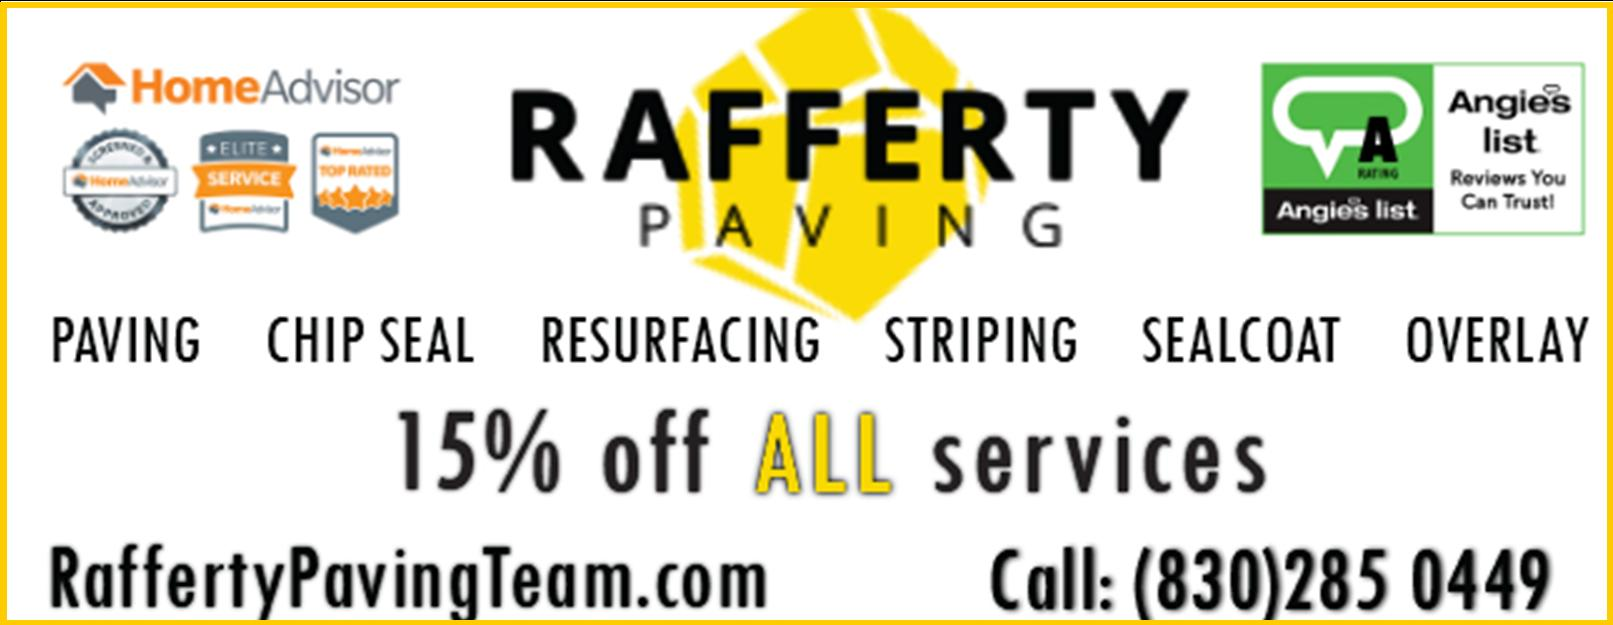 Rafferty Paving Team - Kerrville Texas